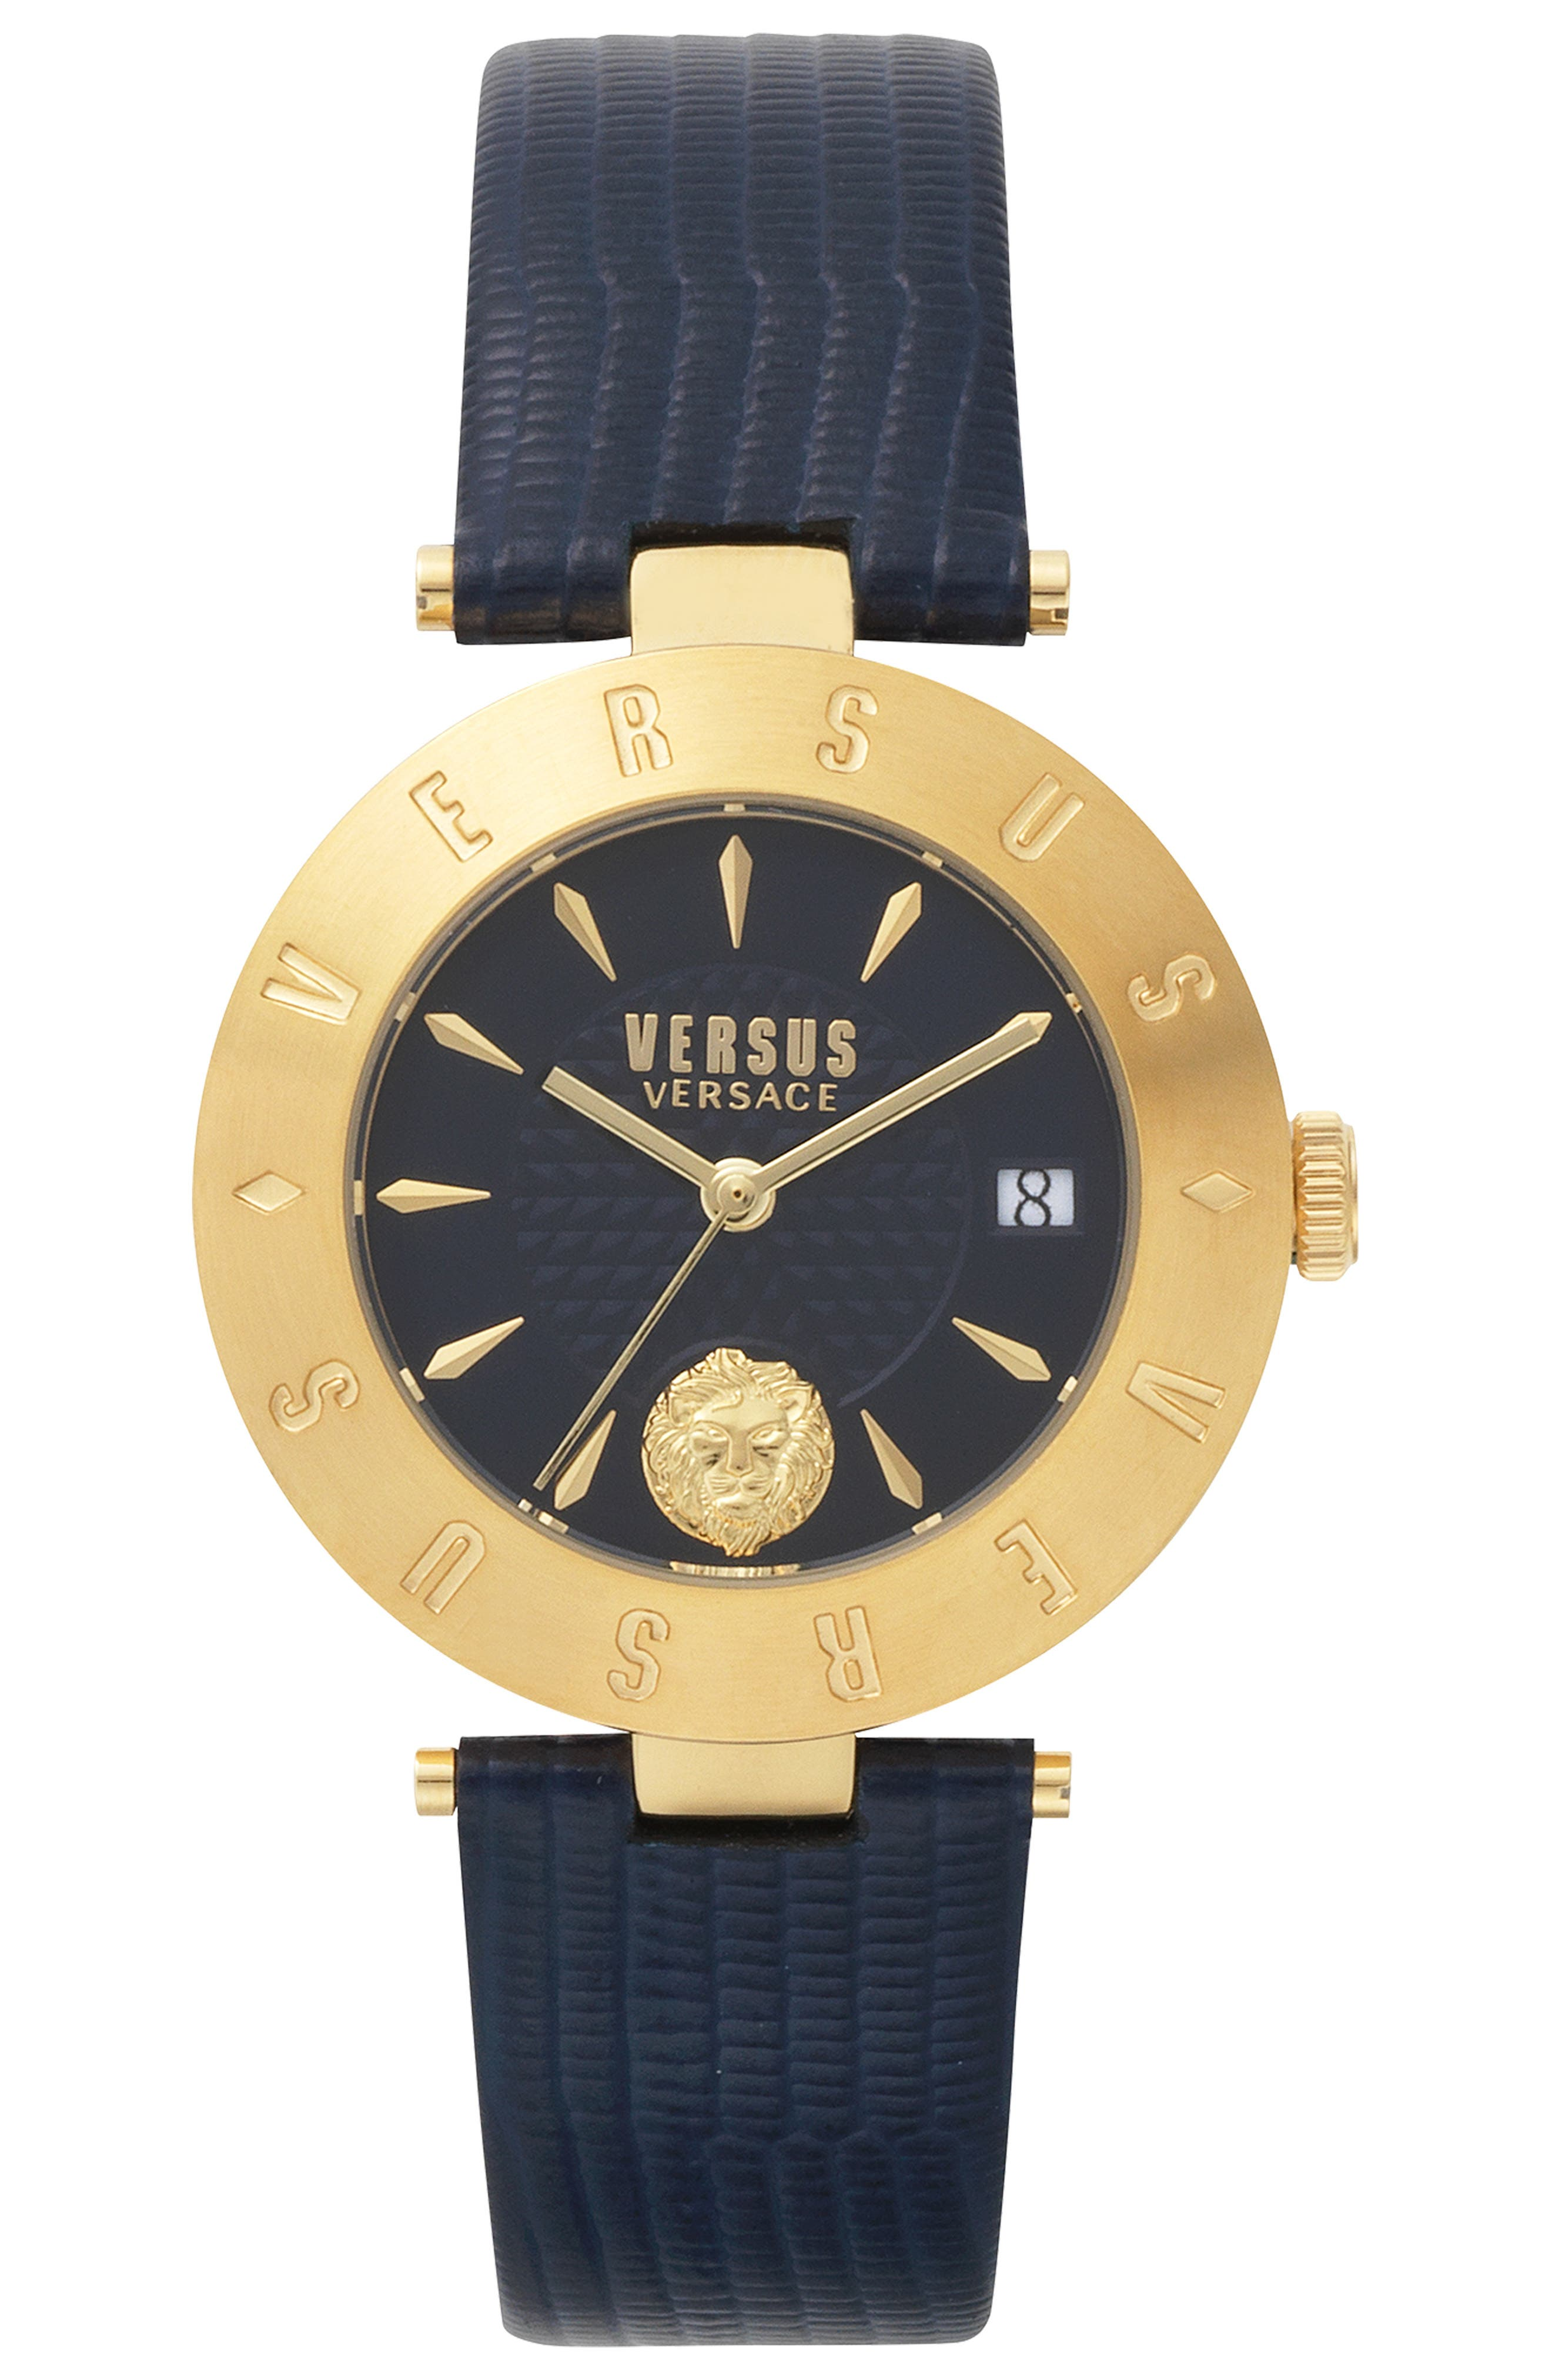 VERSUS VERSACE, Logo Leather Strap Watch, 34mm, Main thumbnail 1, color, BLUE/ GOLD